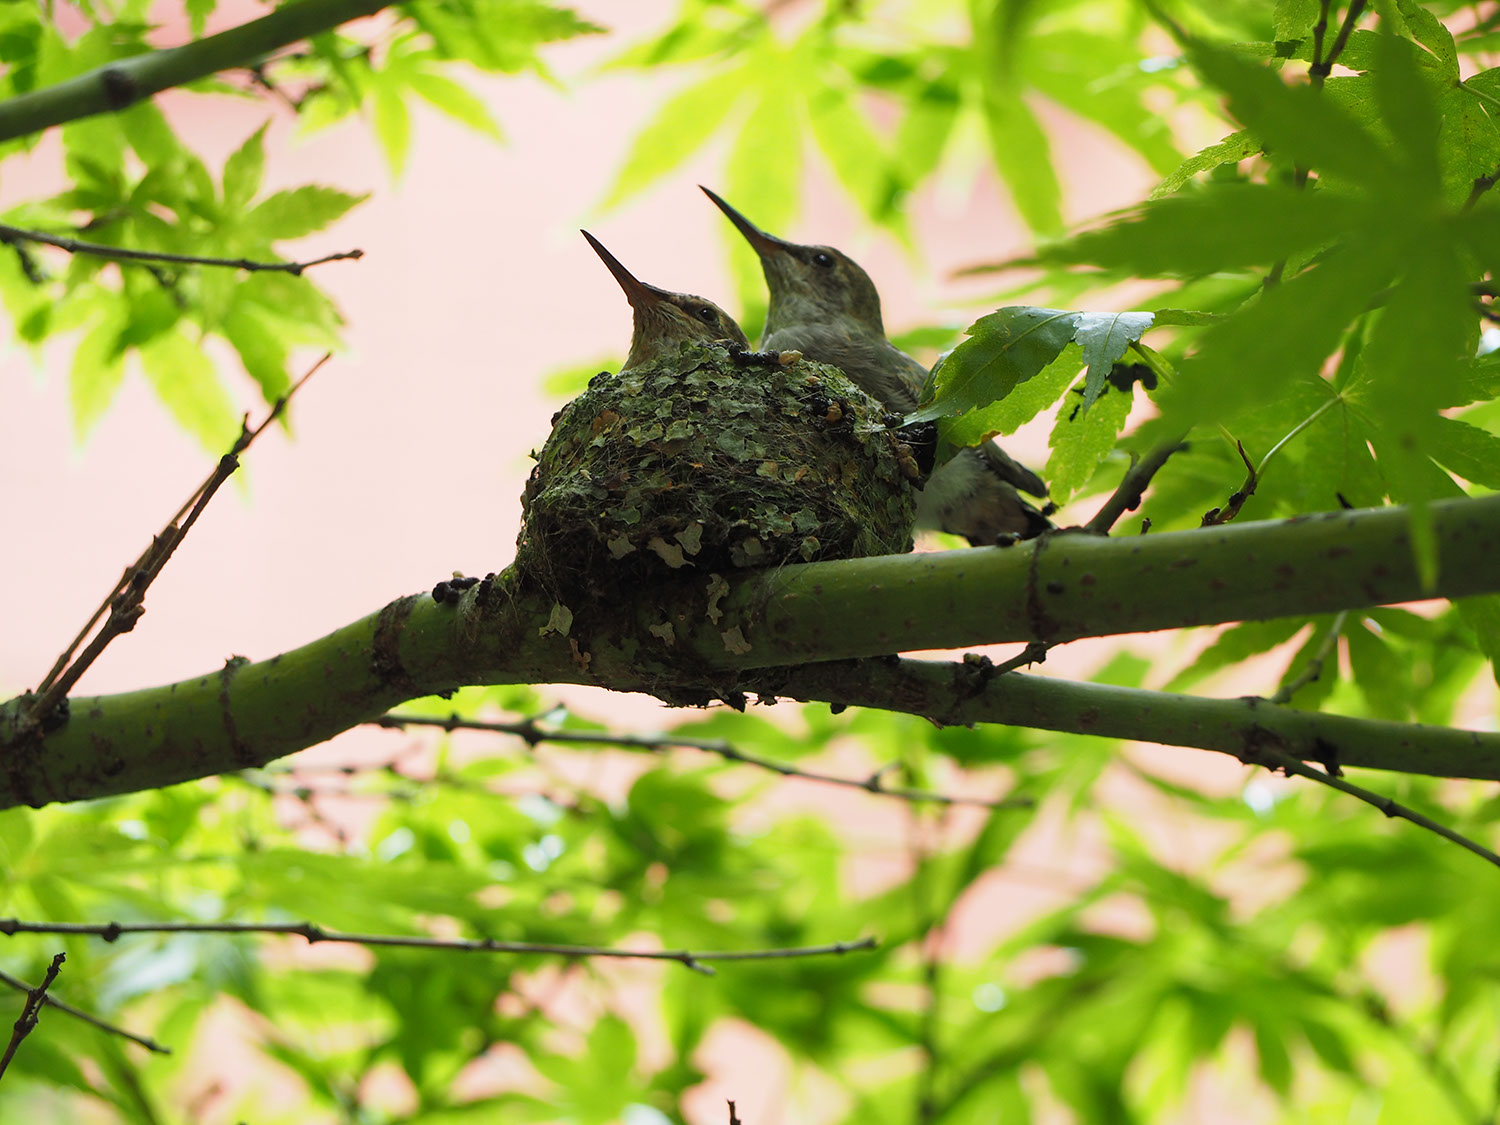 A picture of two hummingbirds in a nest, barely grown